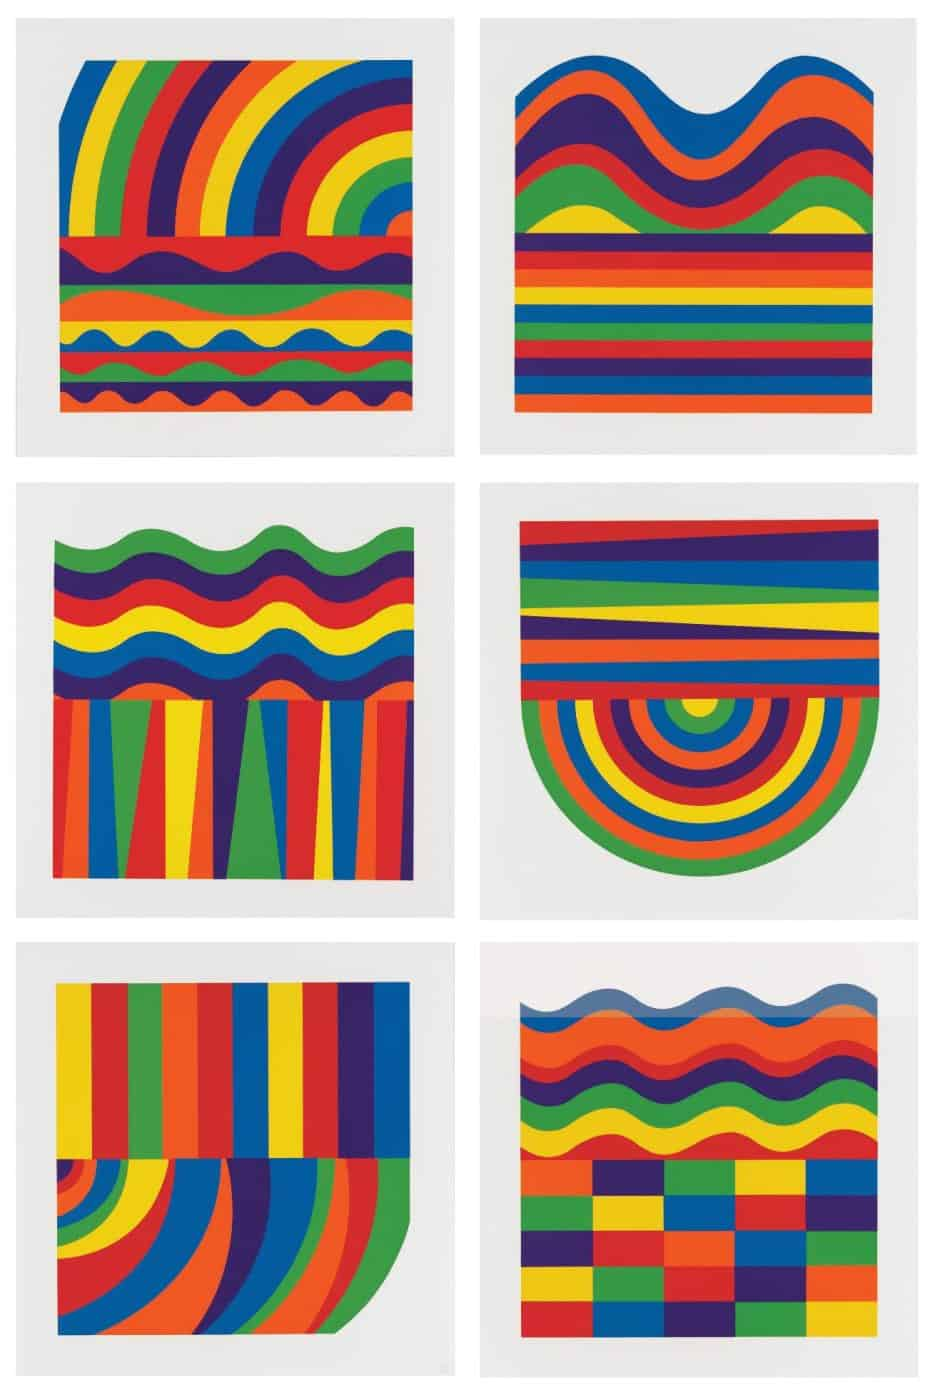 Arcs and Bands in Color, 2000, by SOL LEWITT